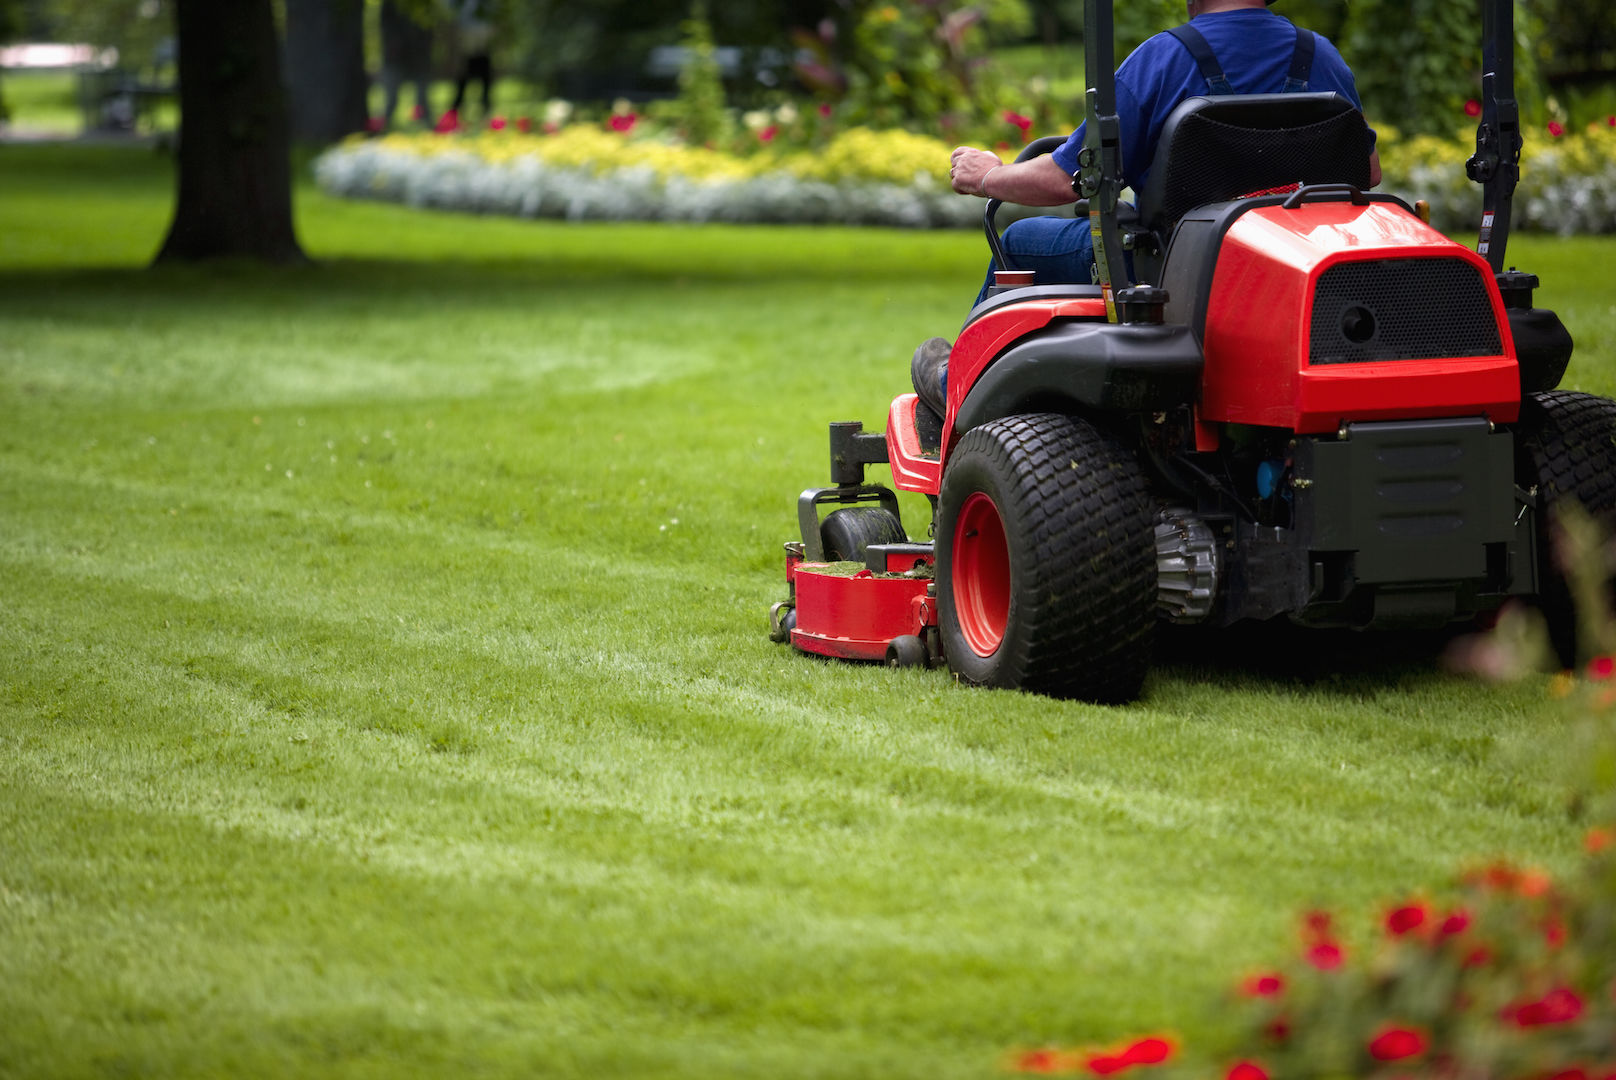 how to start a mowing lawn business working from home businessgrowthclub.com.au